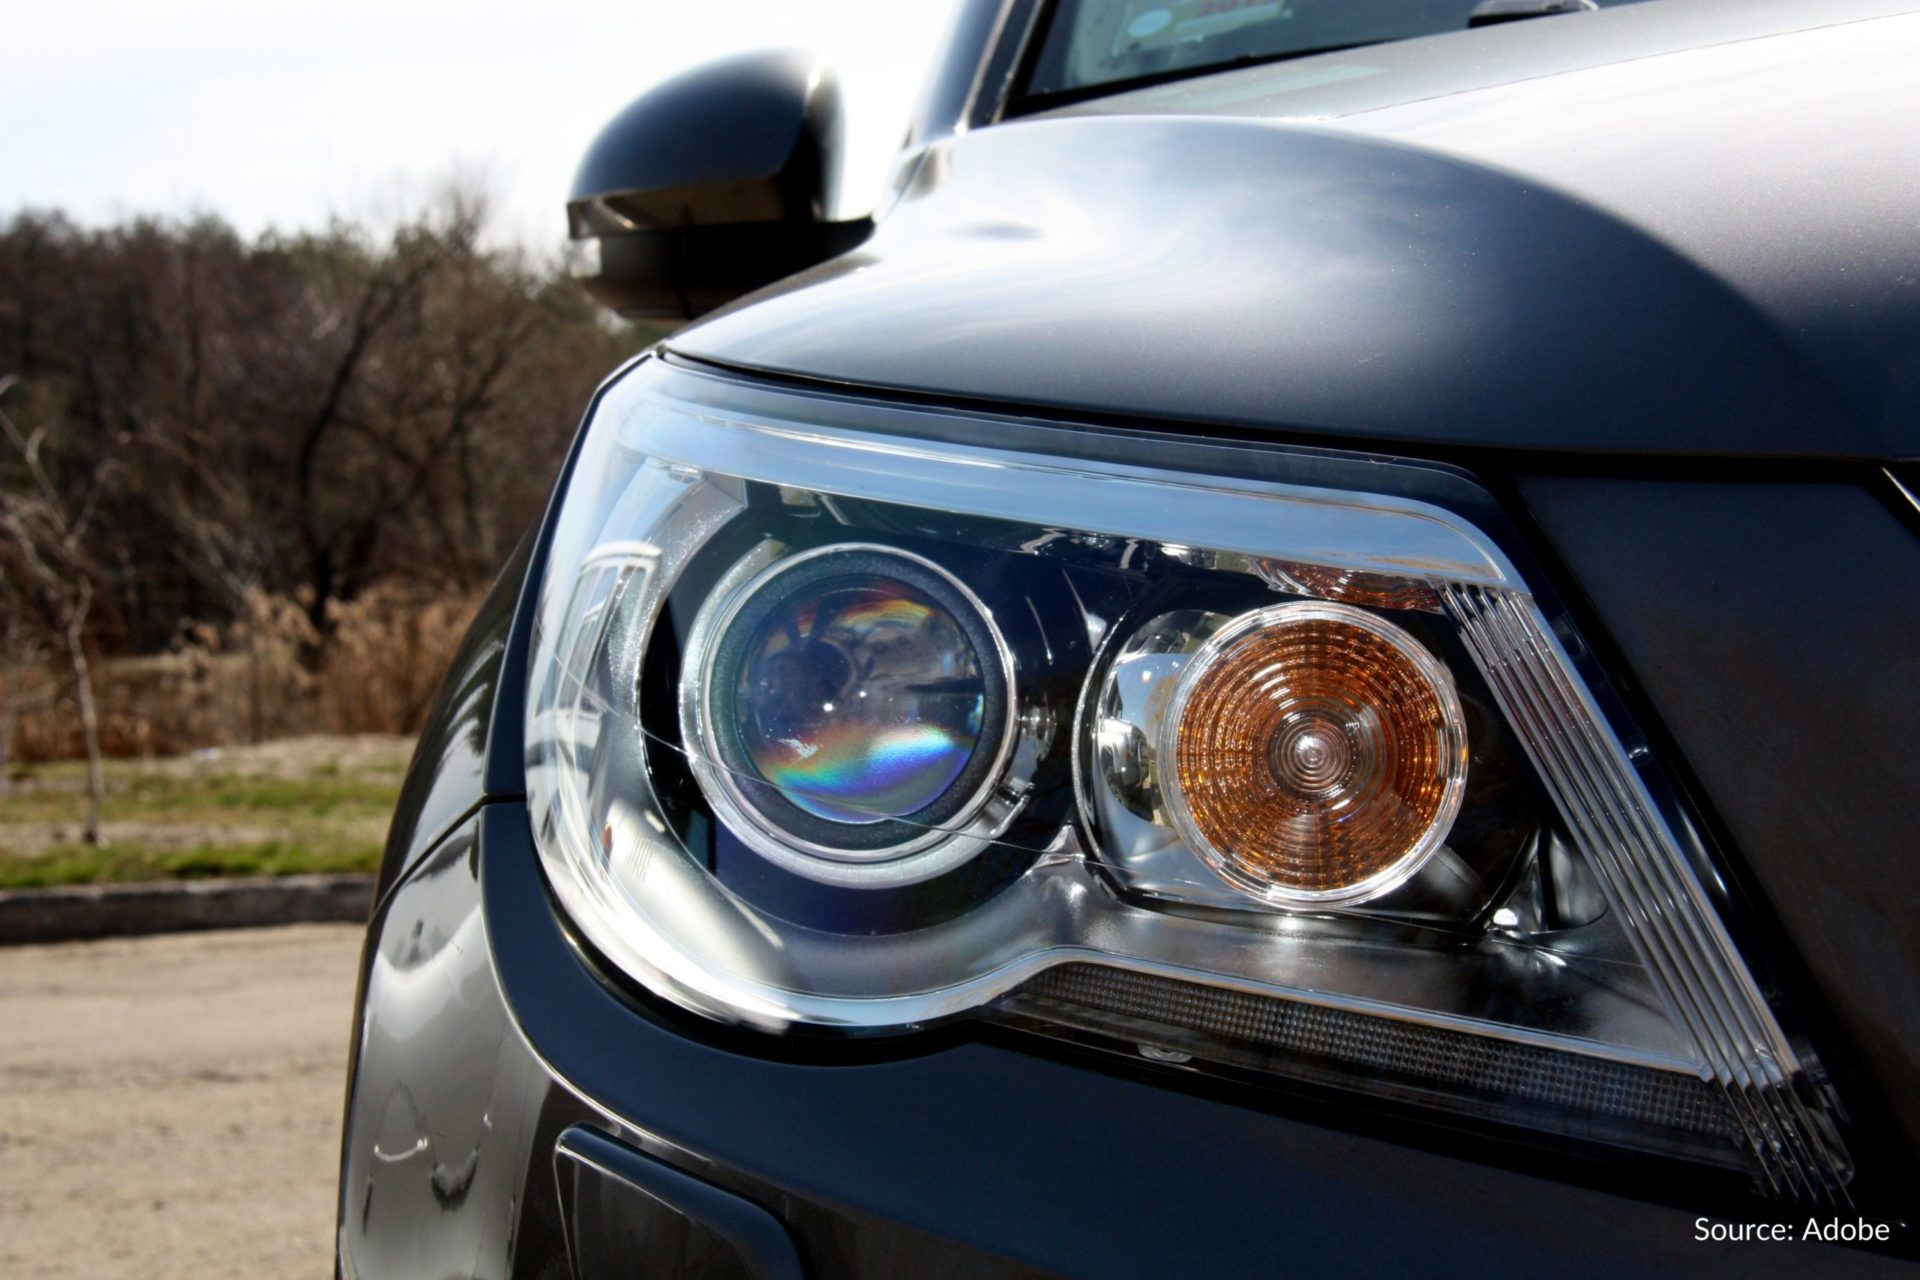 The passenger side headlight of a vehicle.